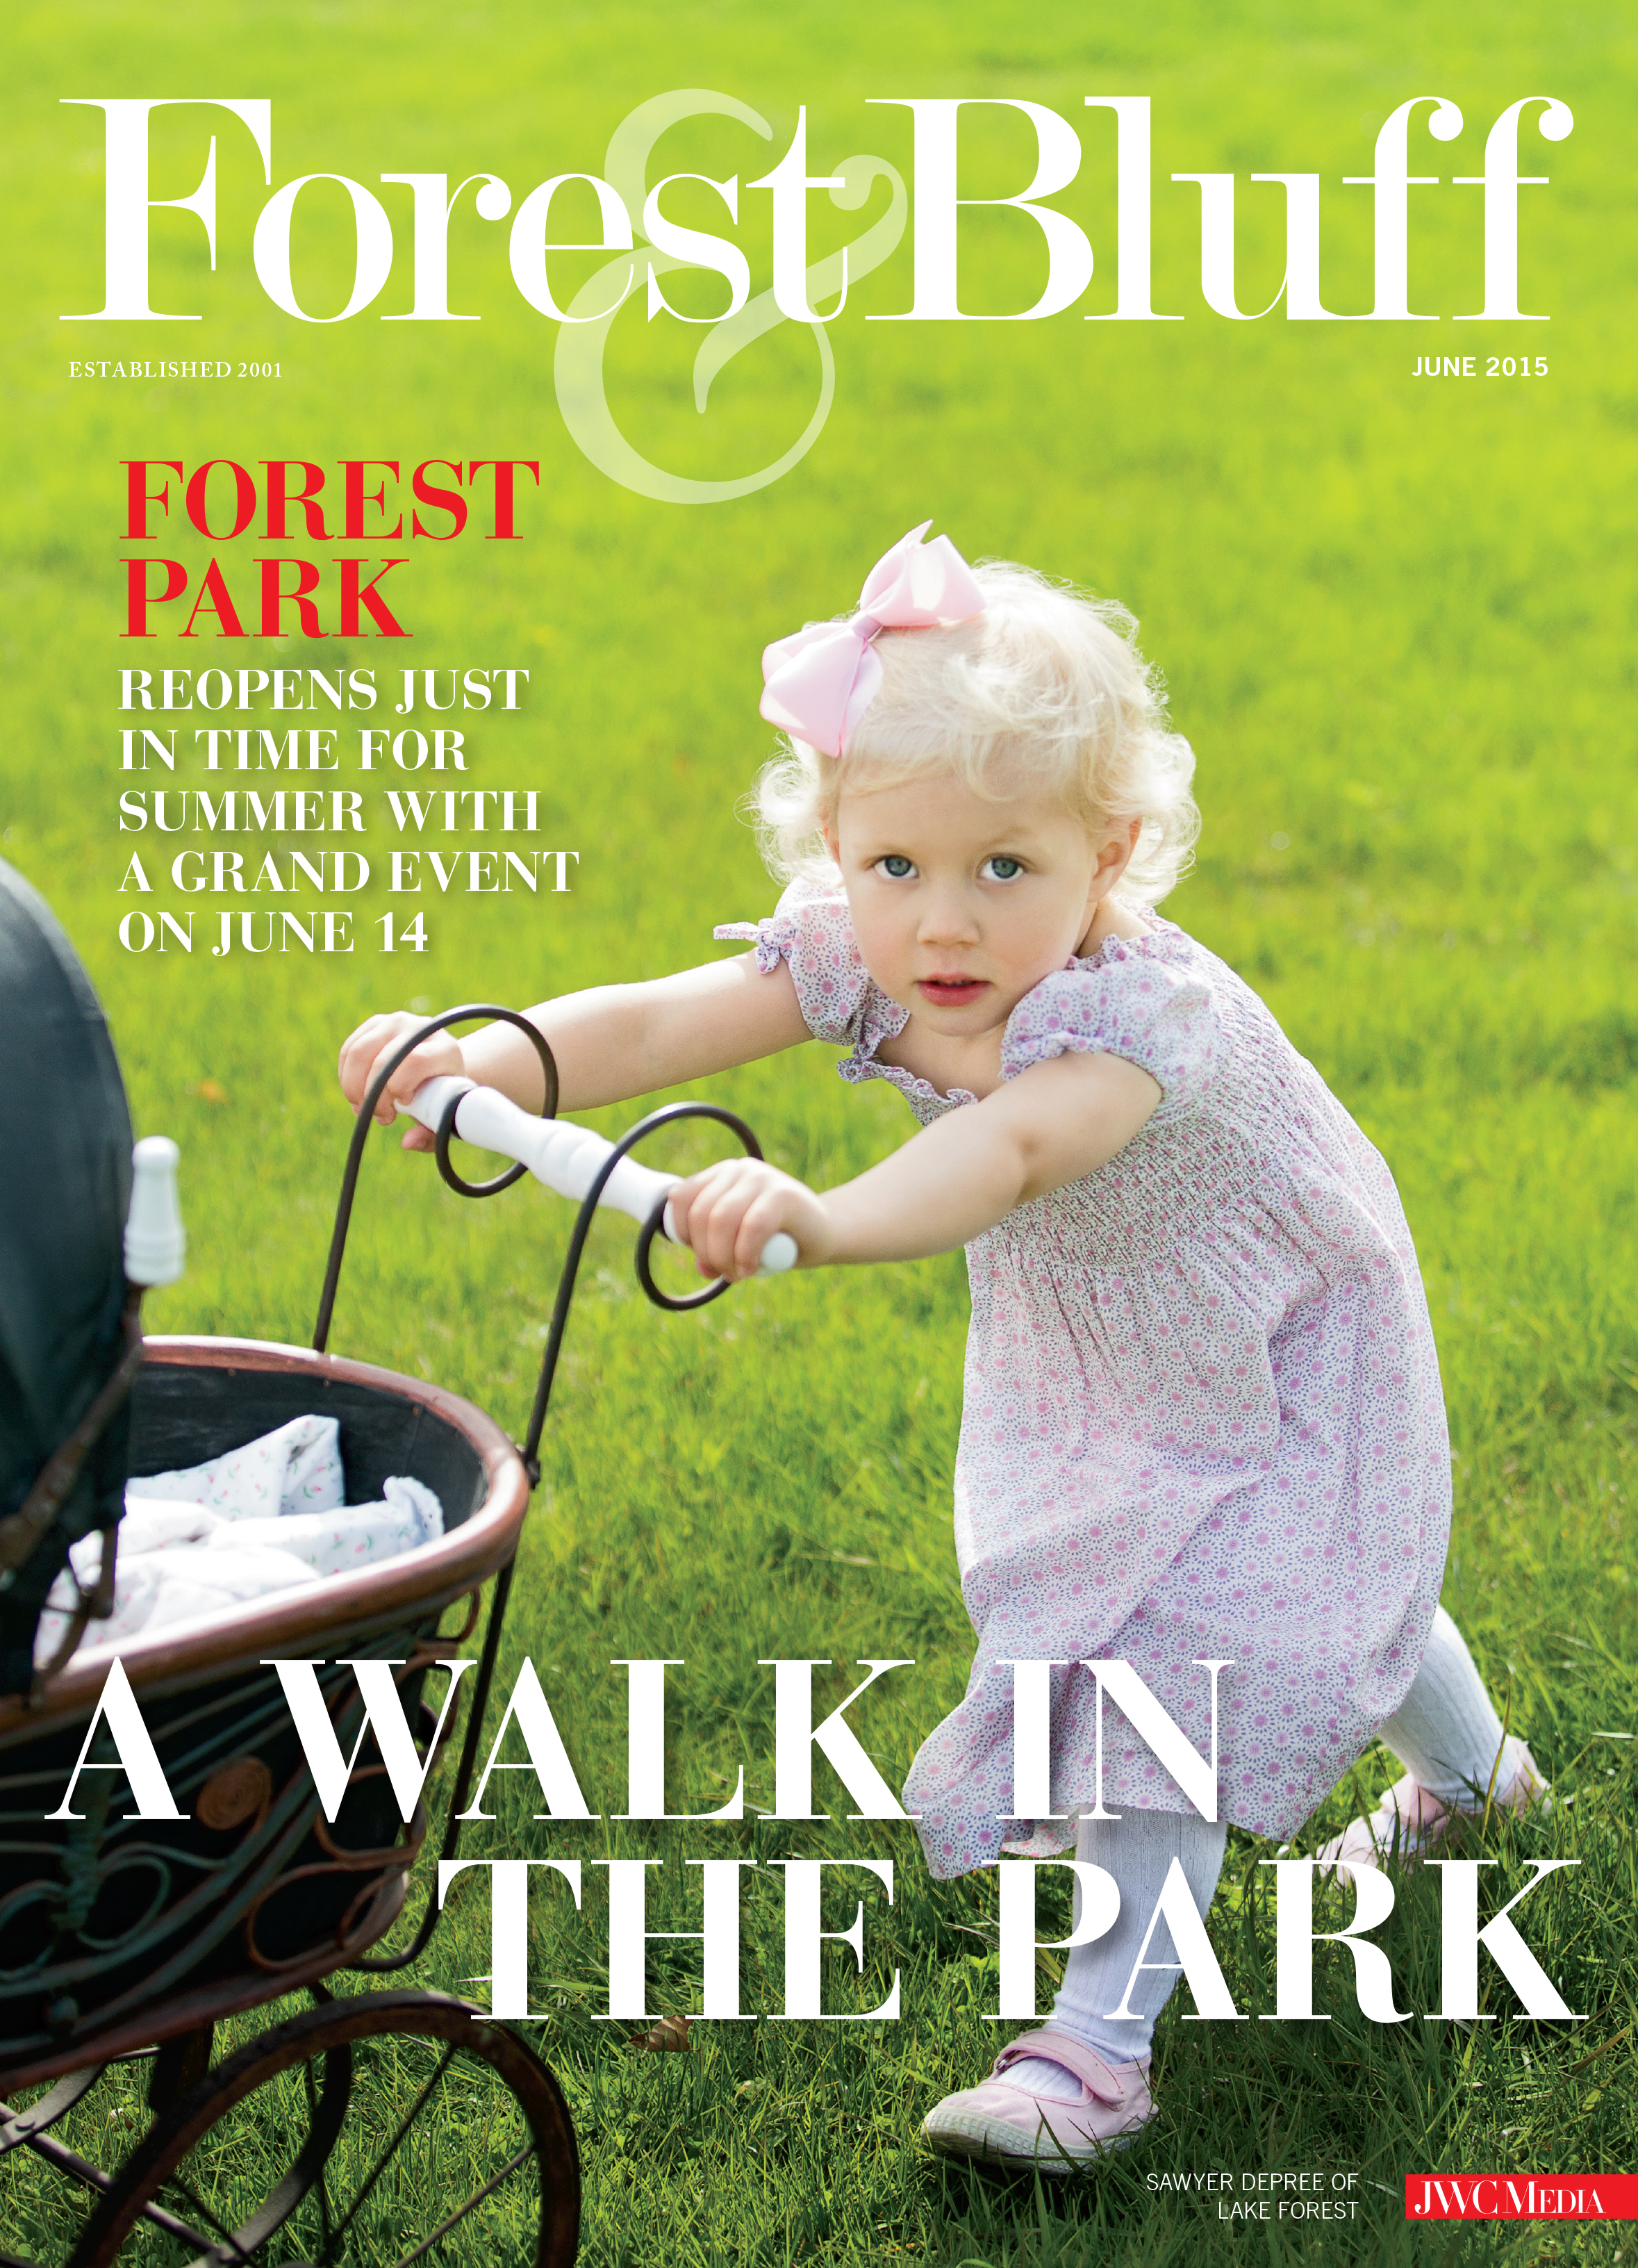 Forest & Bluff Magazine - Cover June 2015